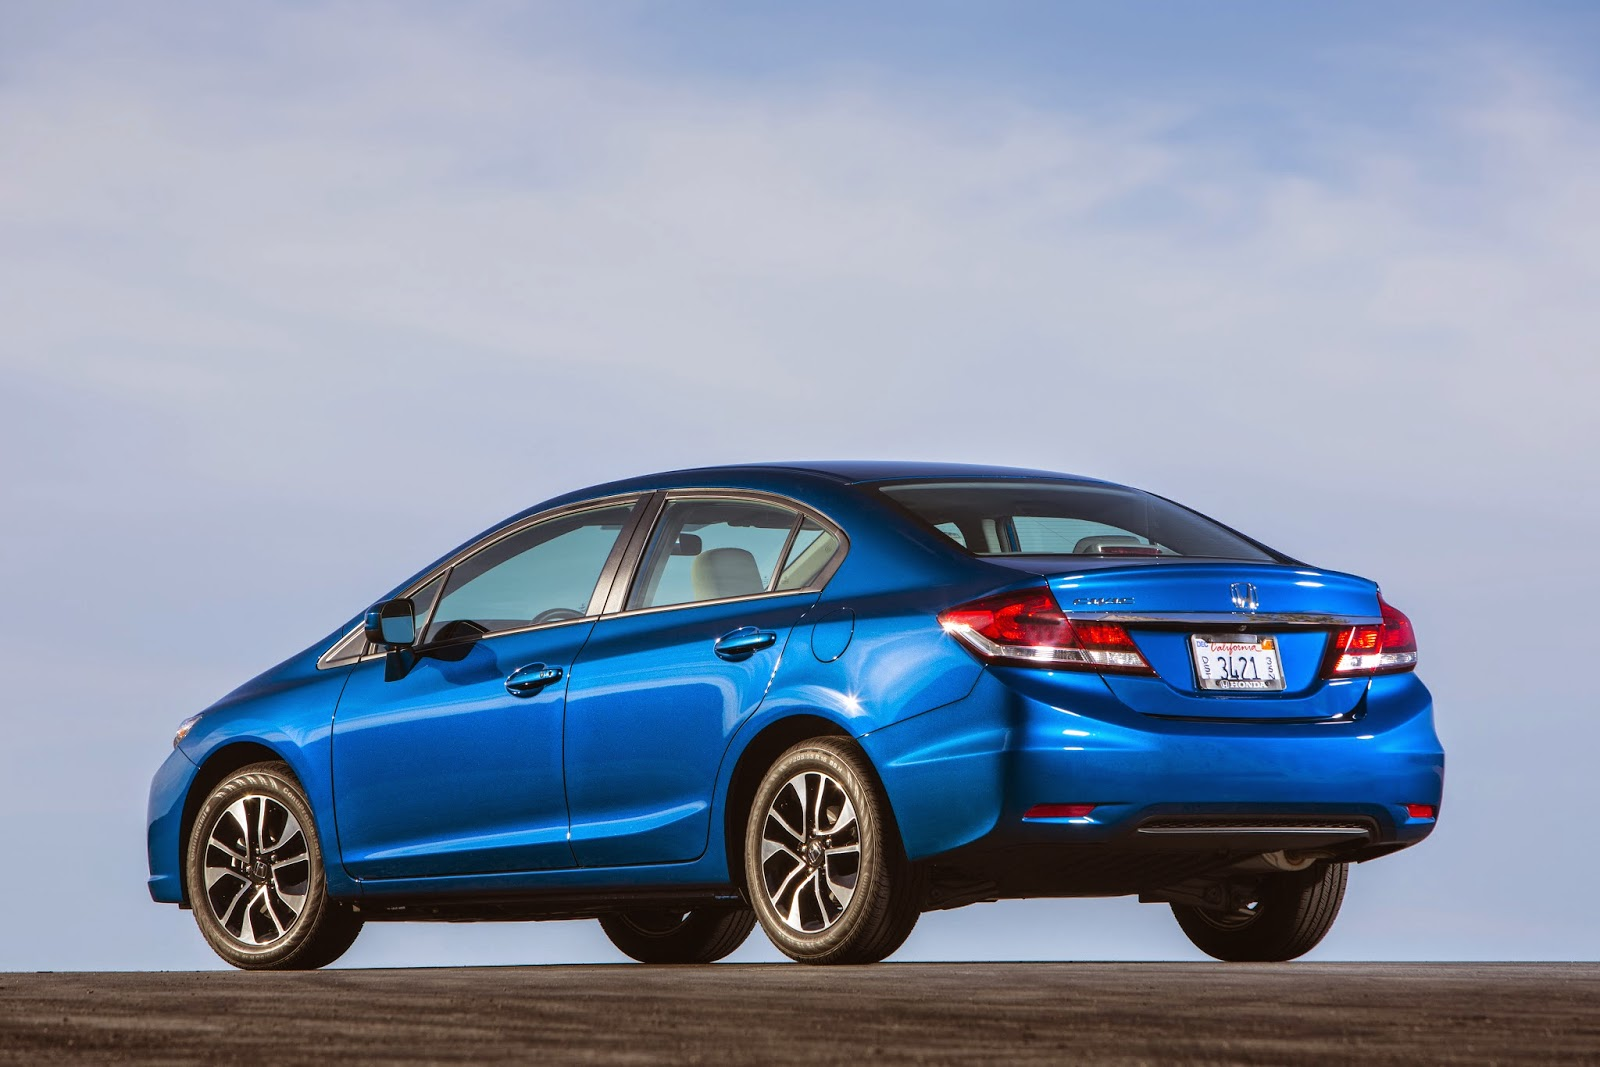 Rear 3/4 view of 2014 Honda Civic EX-L